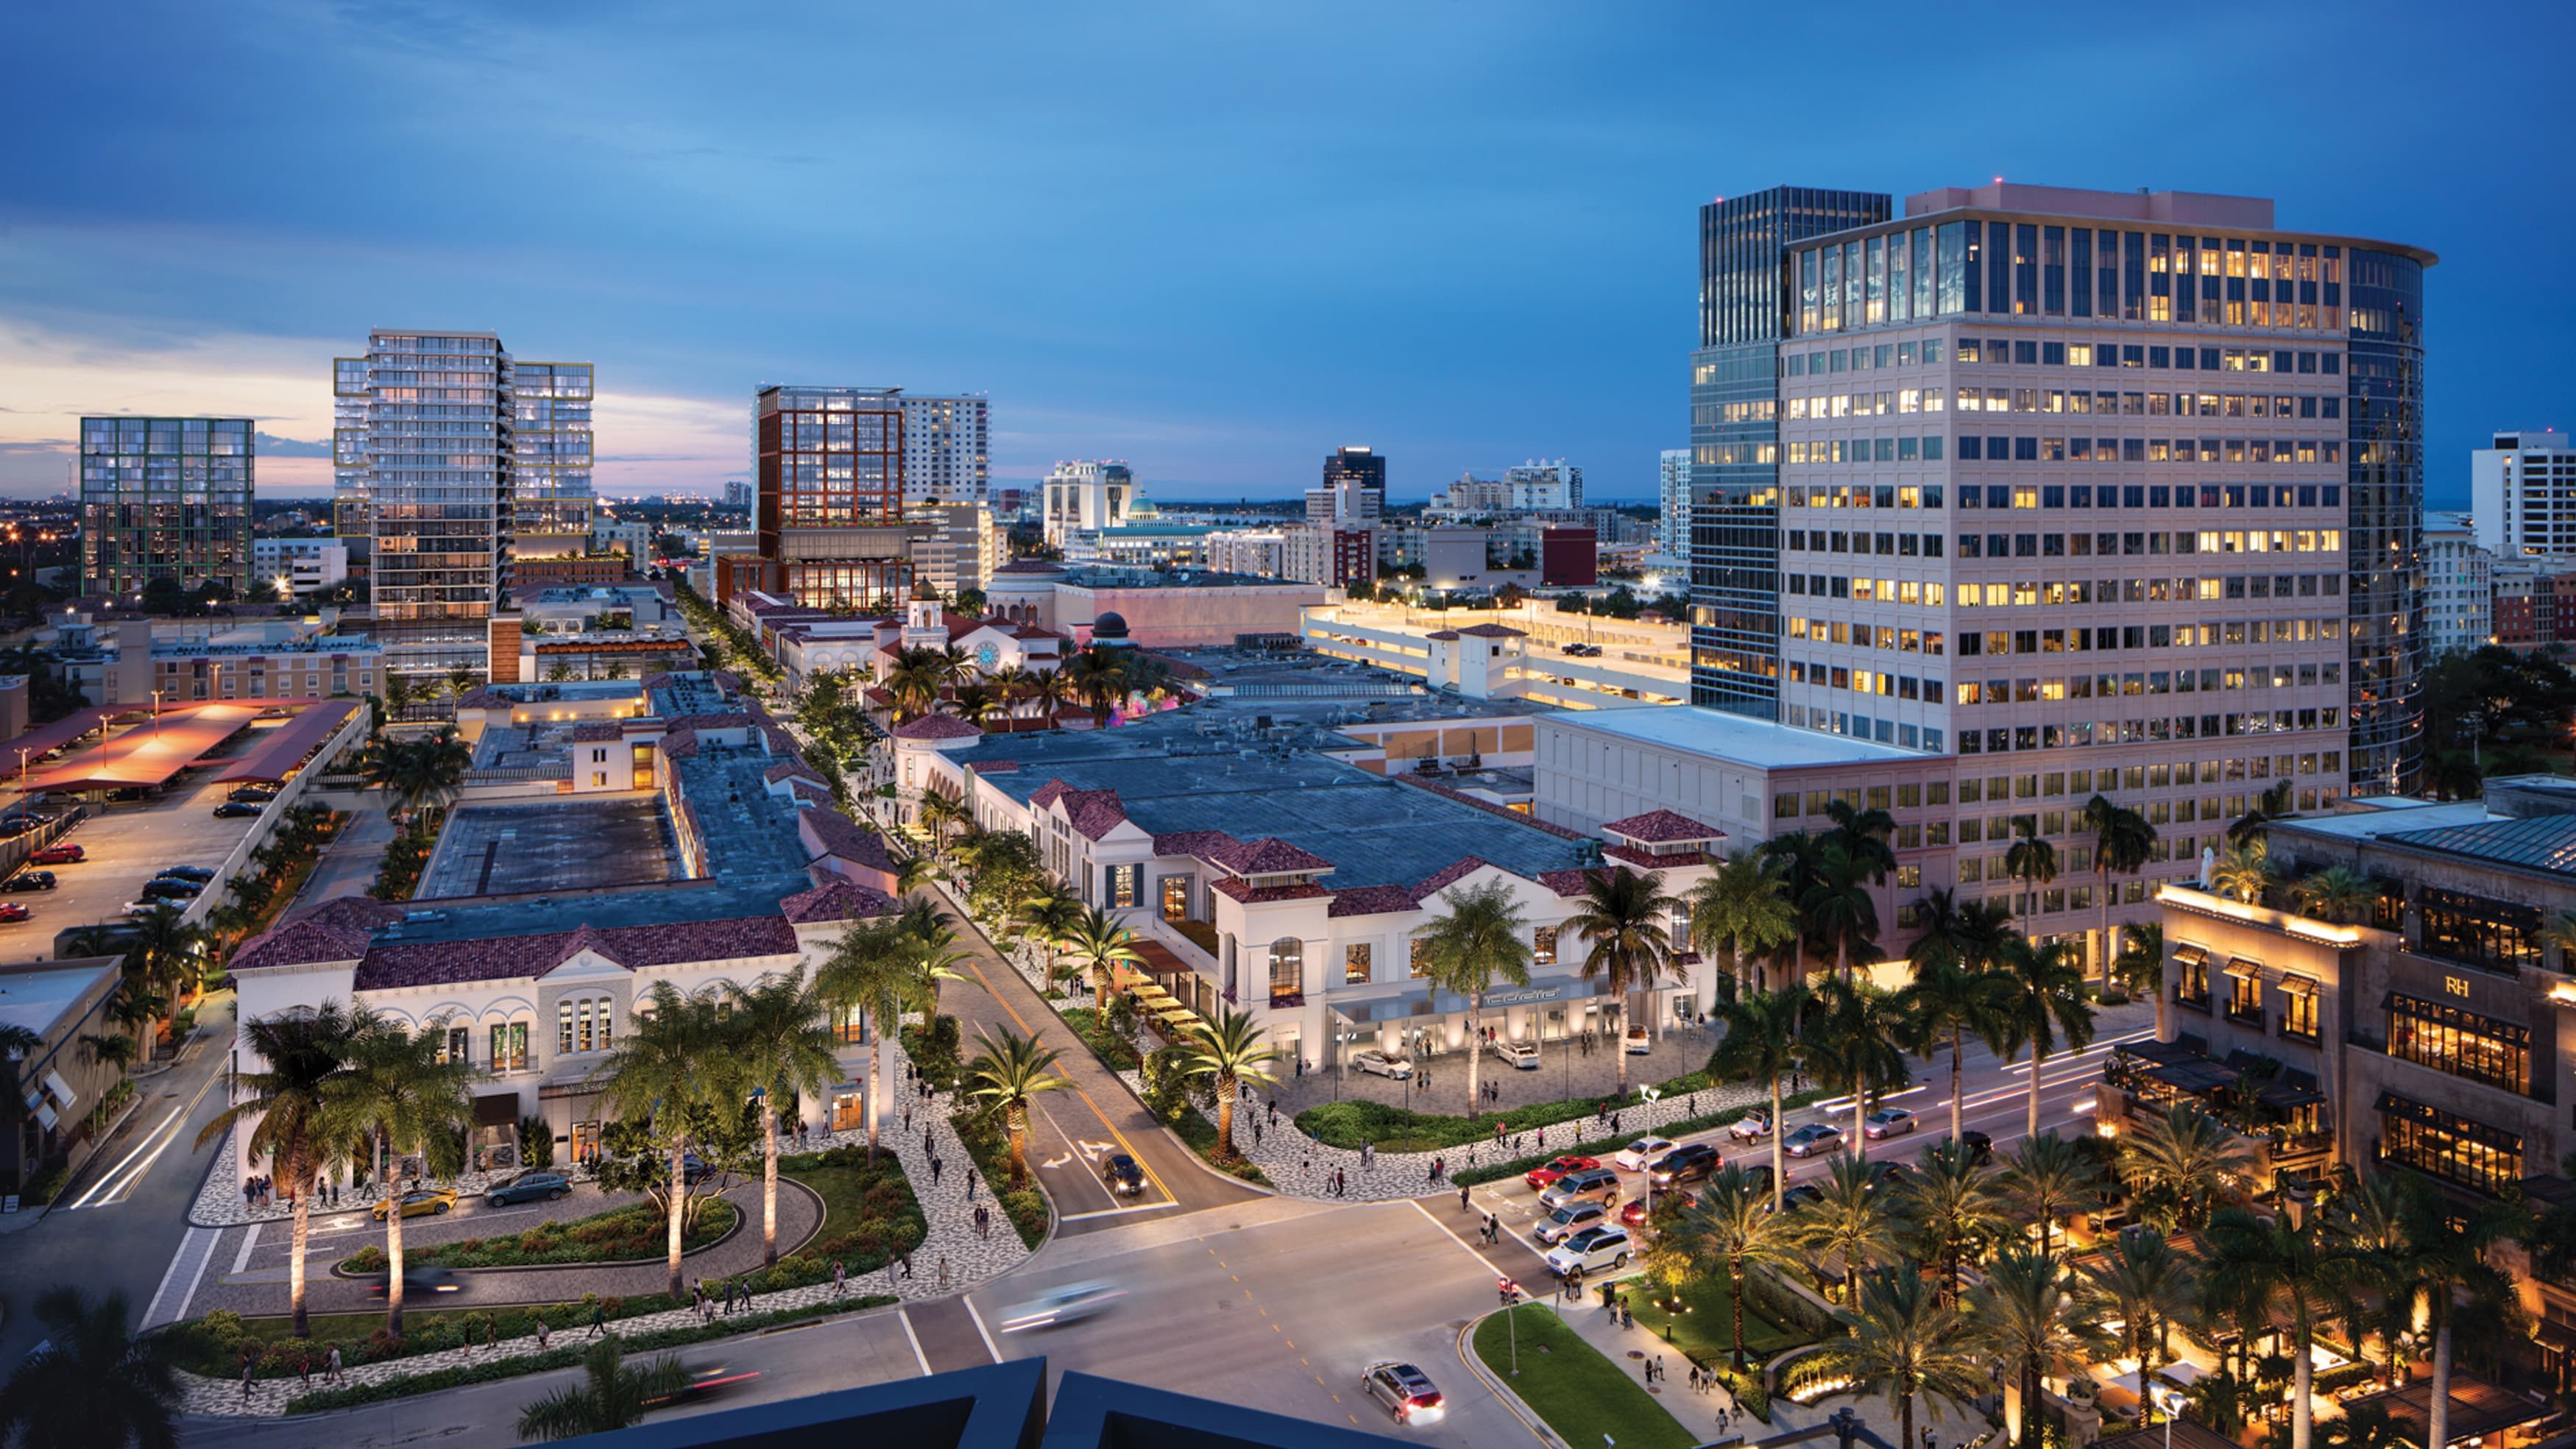 Evening aerial view of a retail center in West Palm Beach, Florida